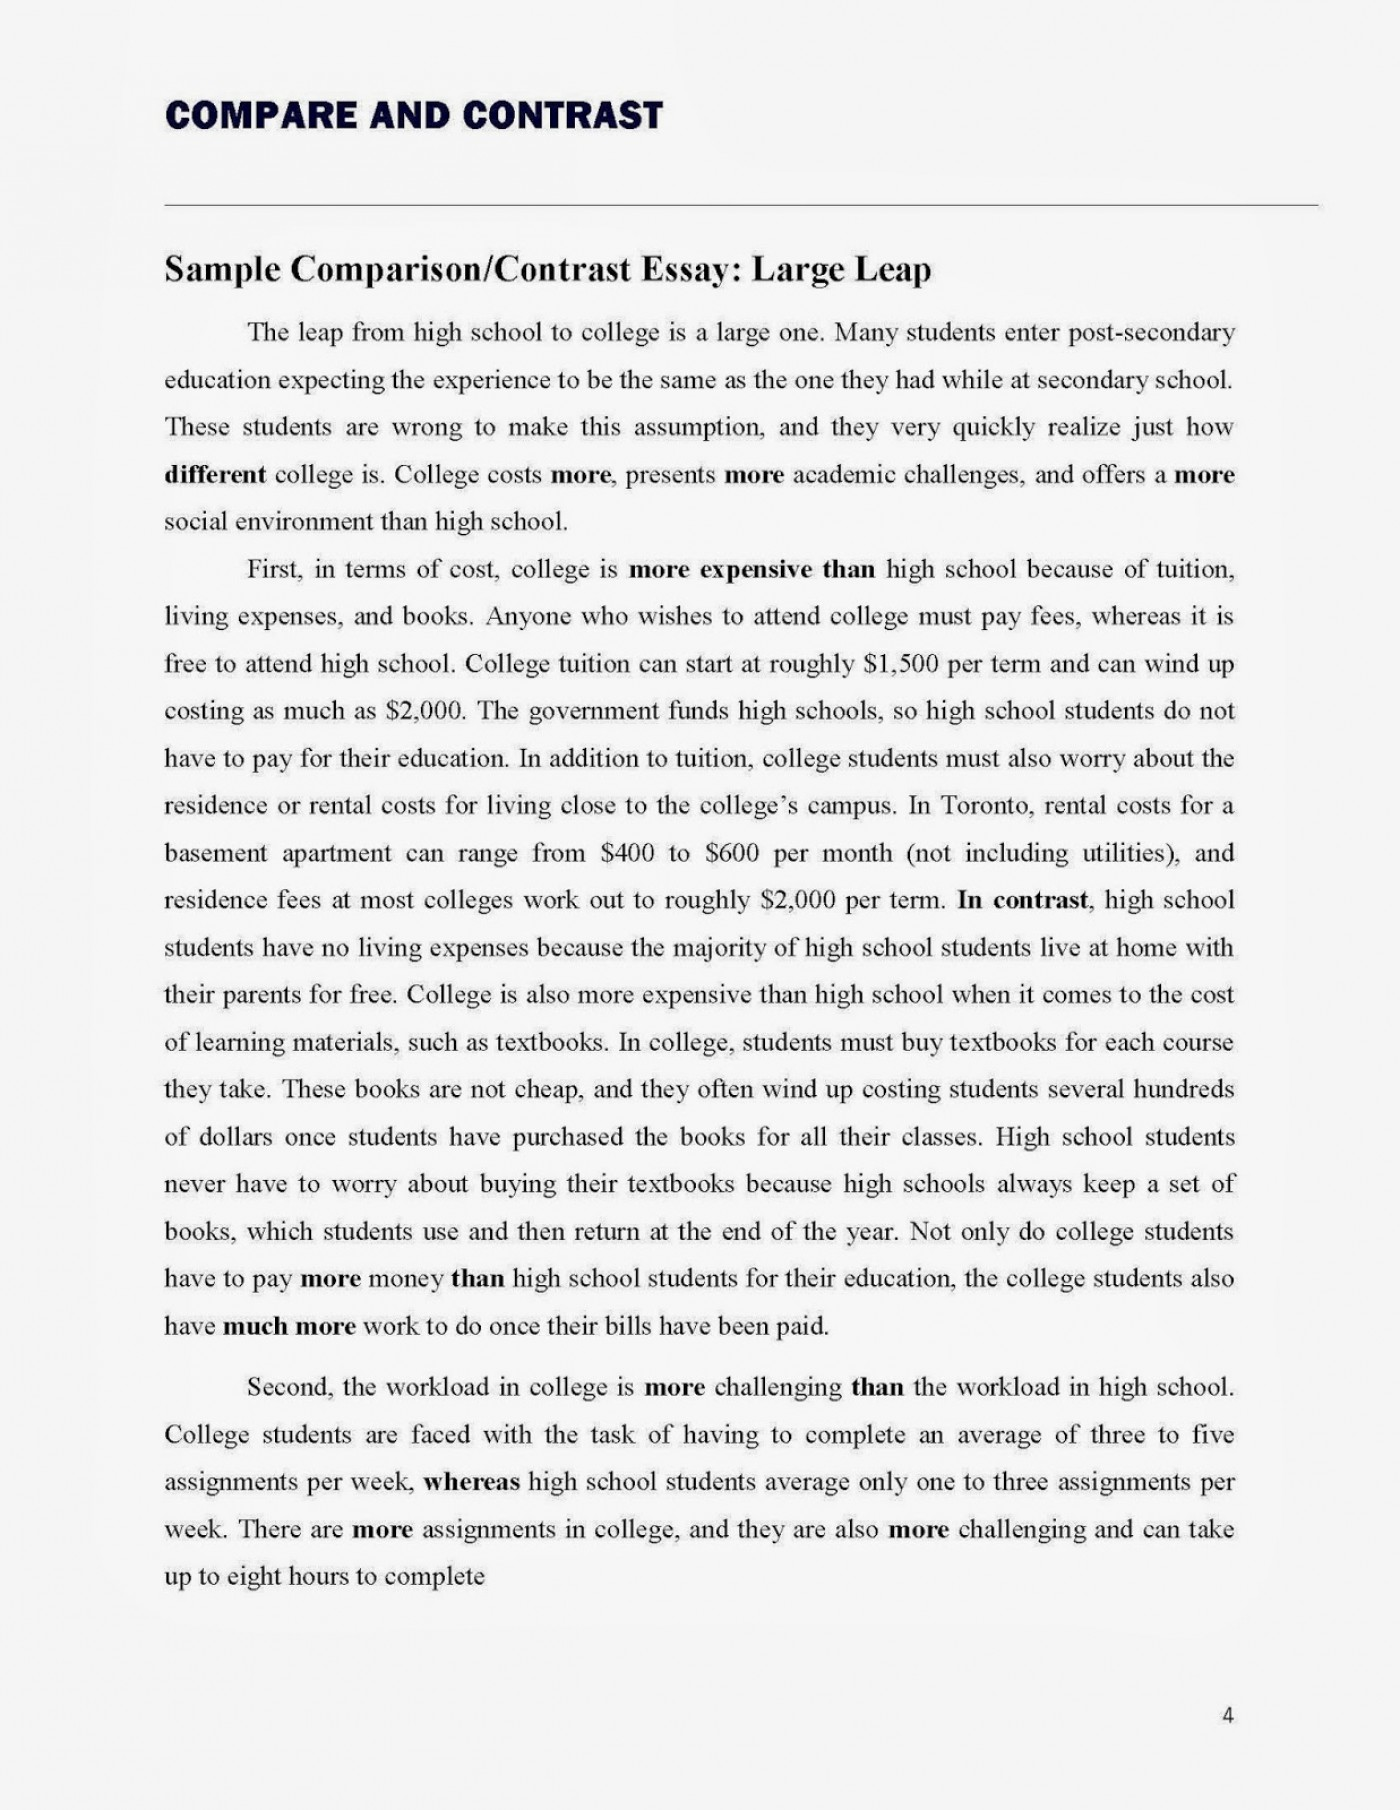 011 Compare And Contrast Essay Compareandcontrastessay Page 4h125 Frightening Outline Block Method Ideas High School Template For Middle 1400